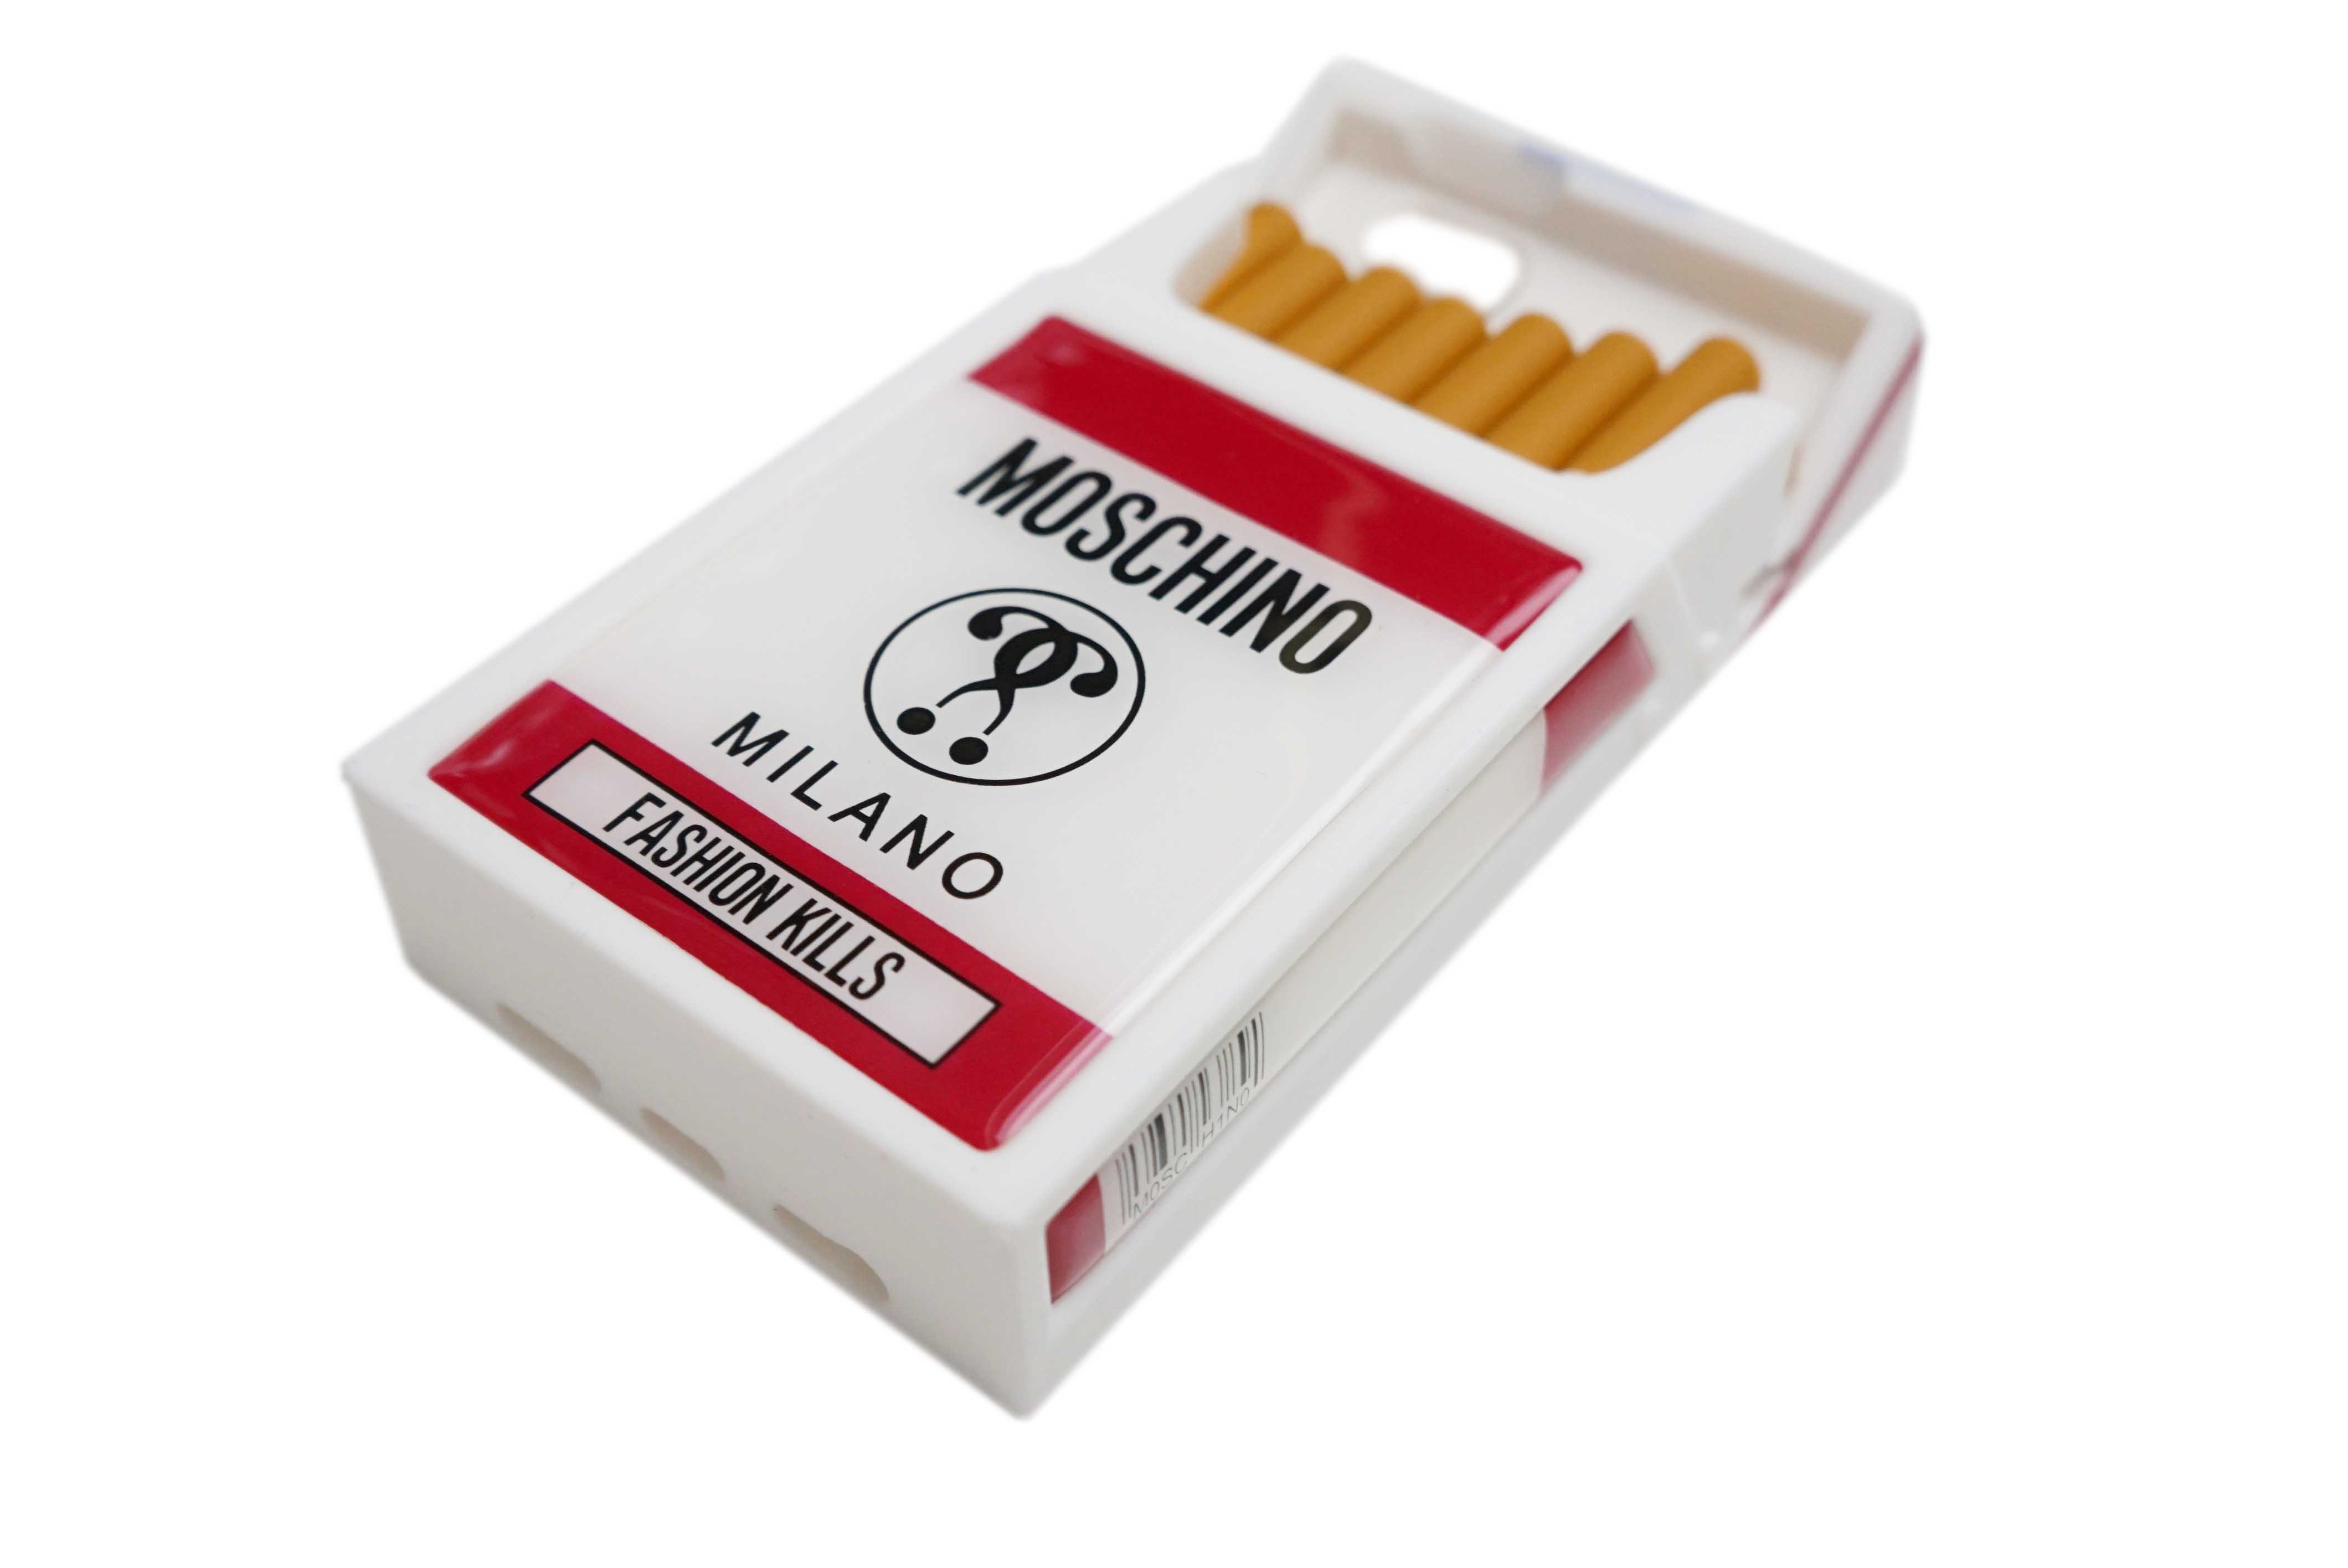 MOSCHINO megbabyさん愛用 iphone6 ケース 正規品 Tabacco